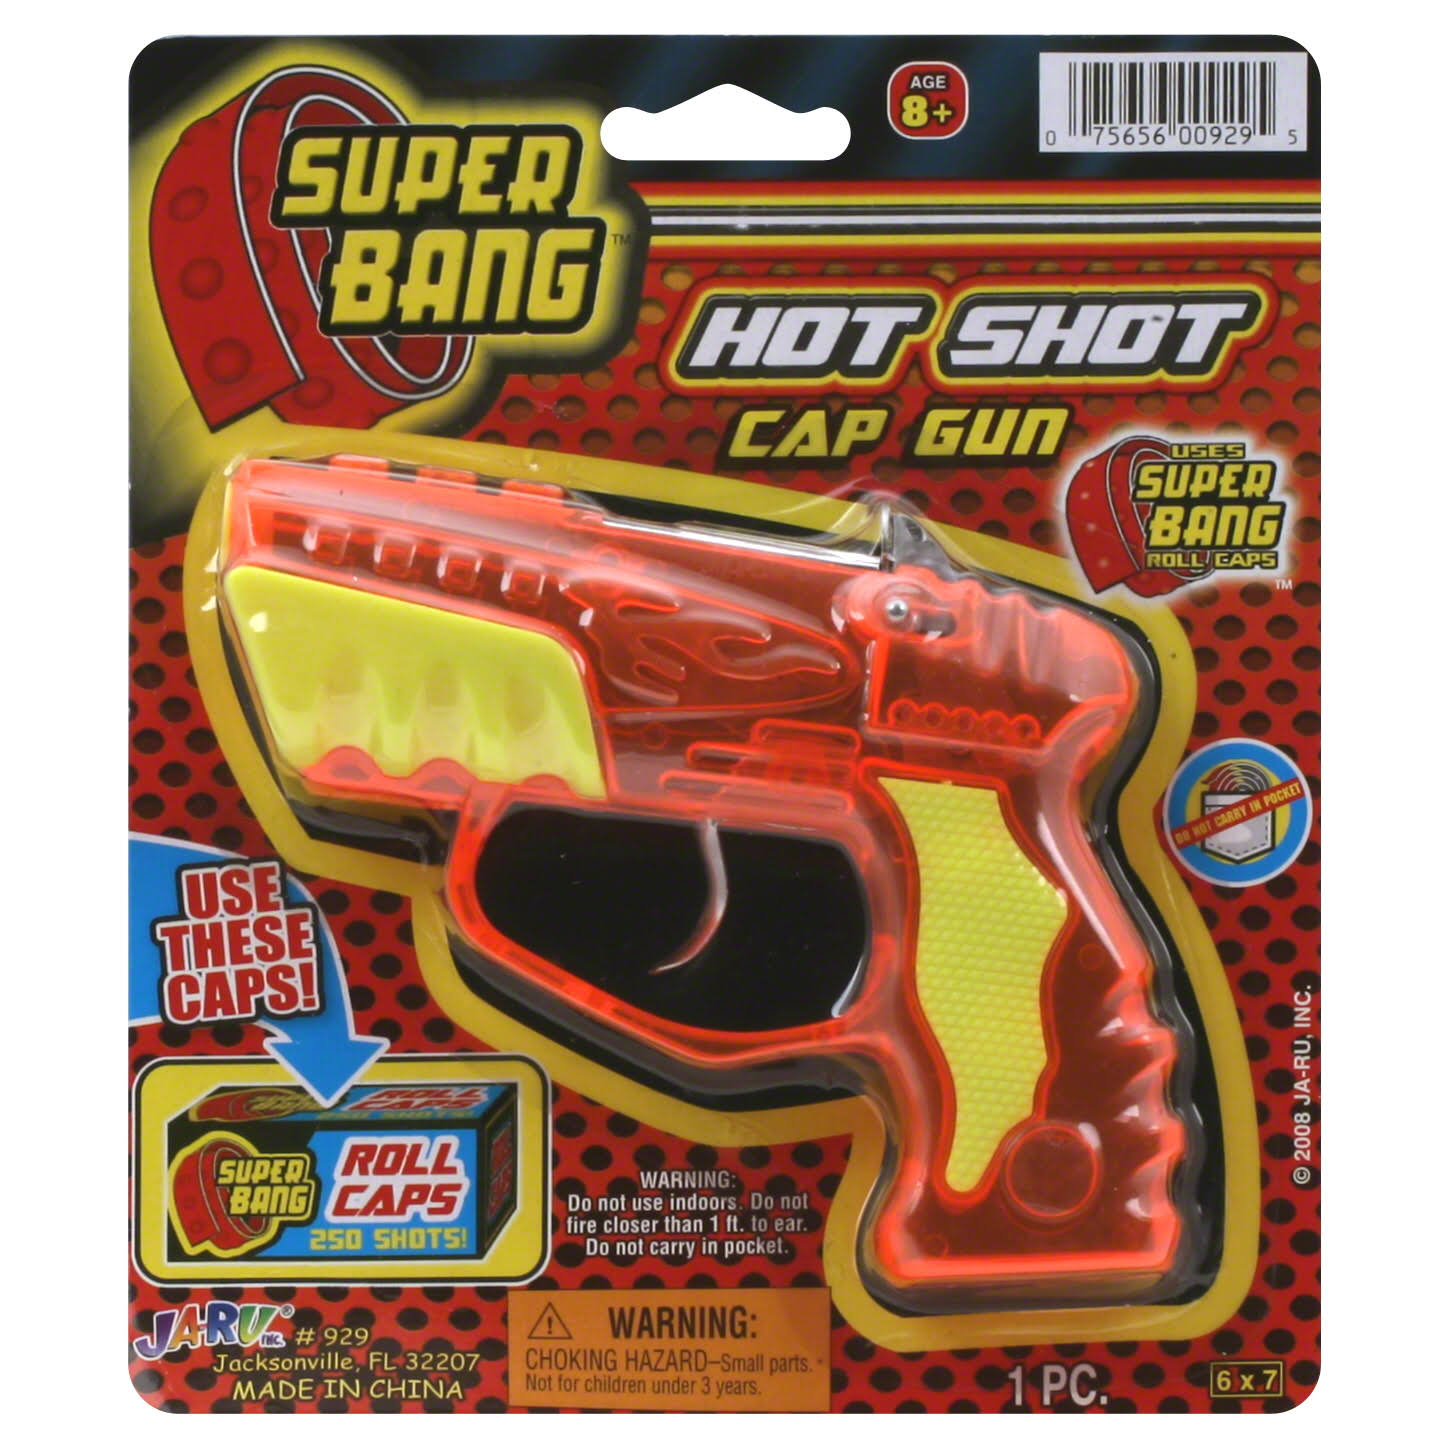 Super Bang Cap Gun - Hot Shot